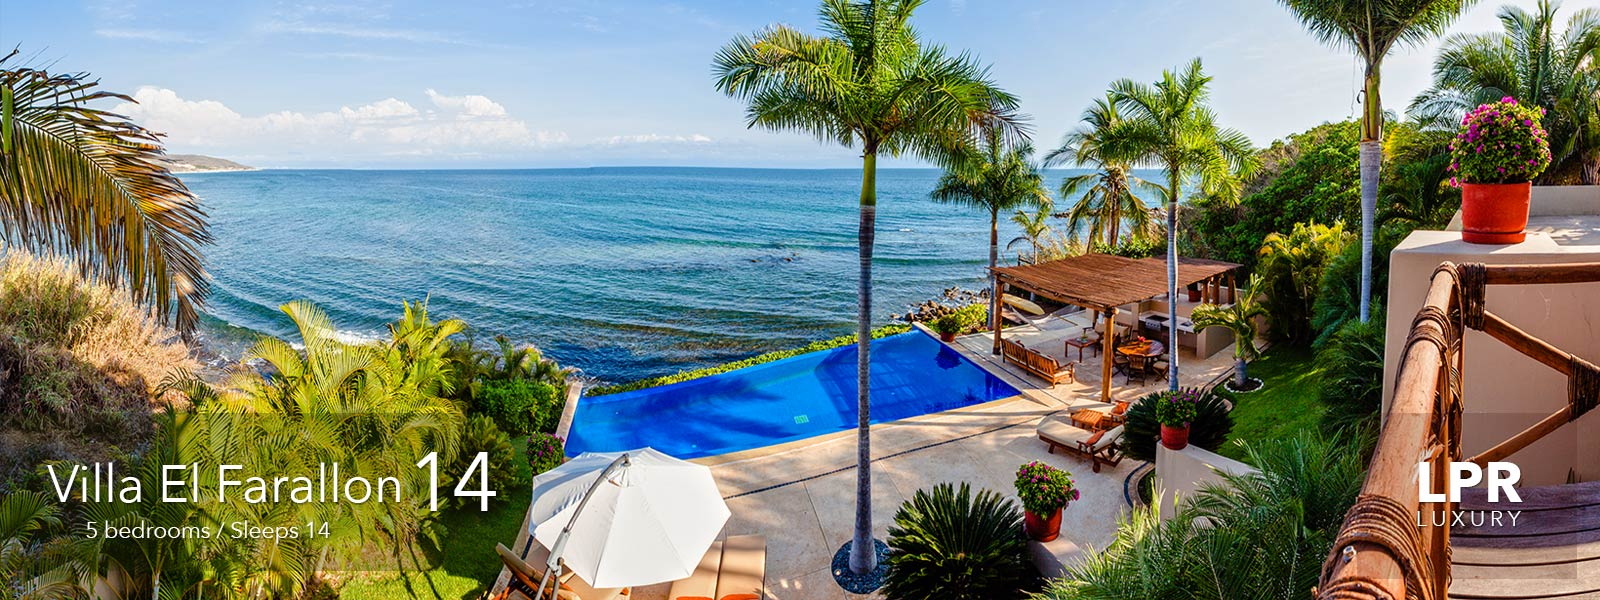 Villa el Farallon 14 - Punta de Mita Puerto Vallarta luxury real estate - Villa for sale and rent